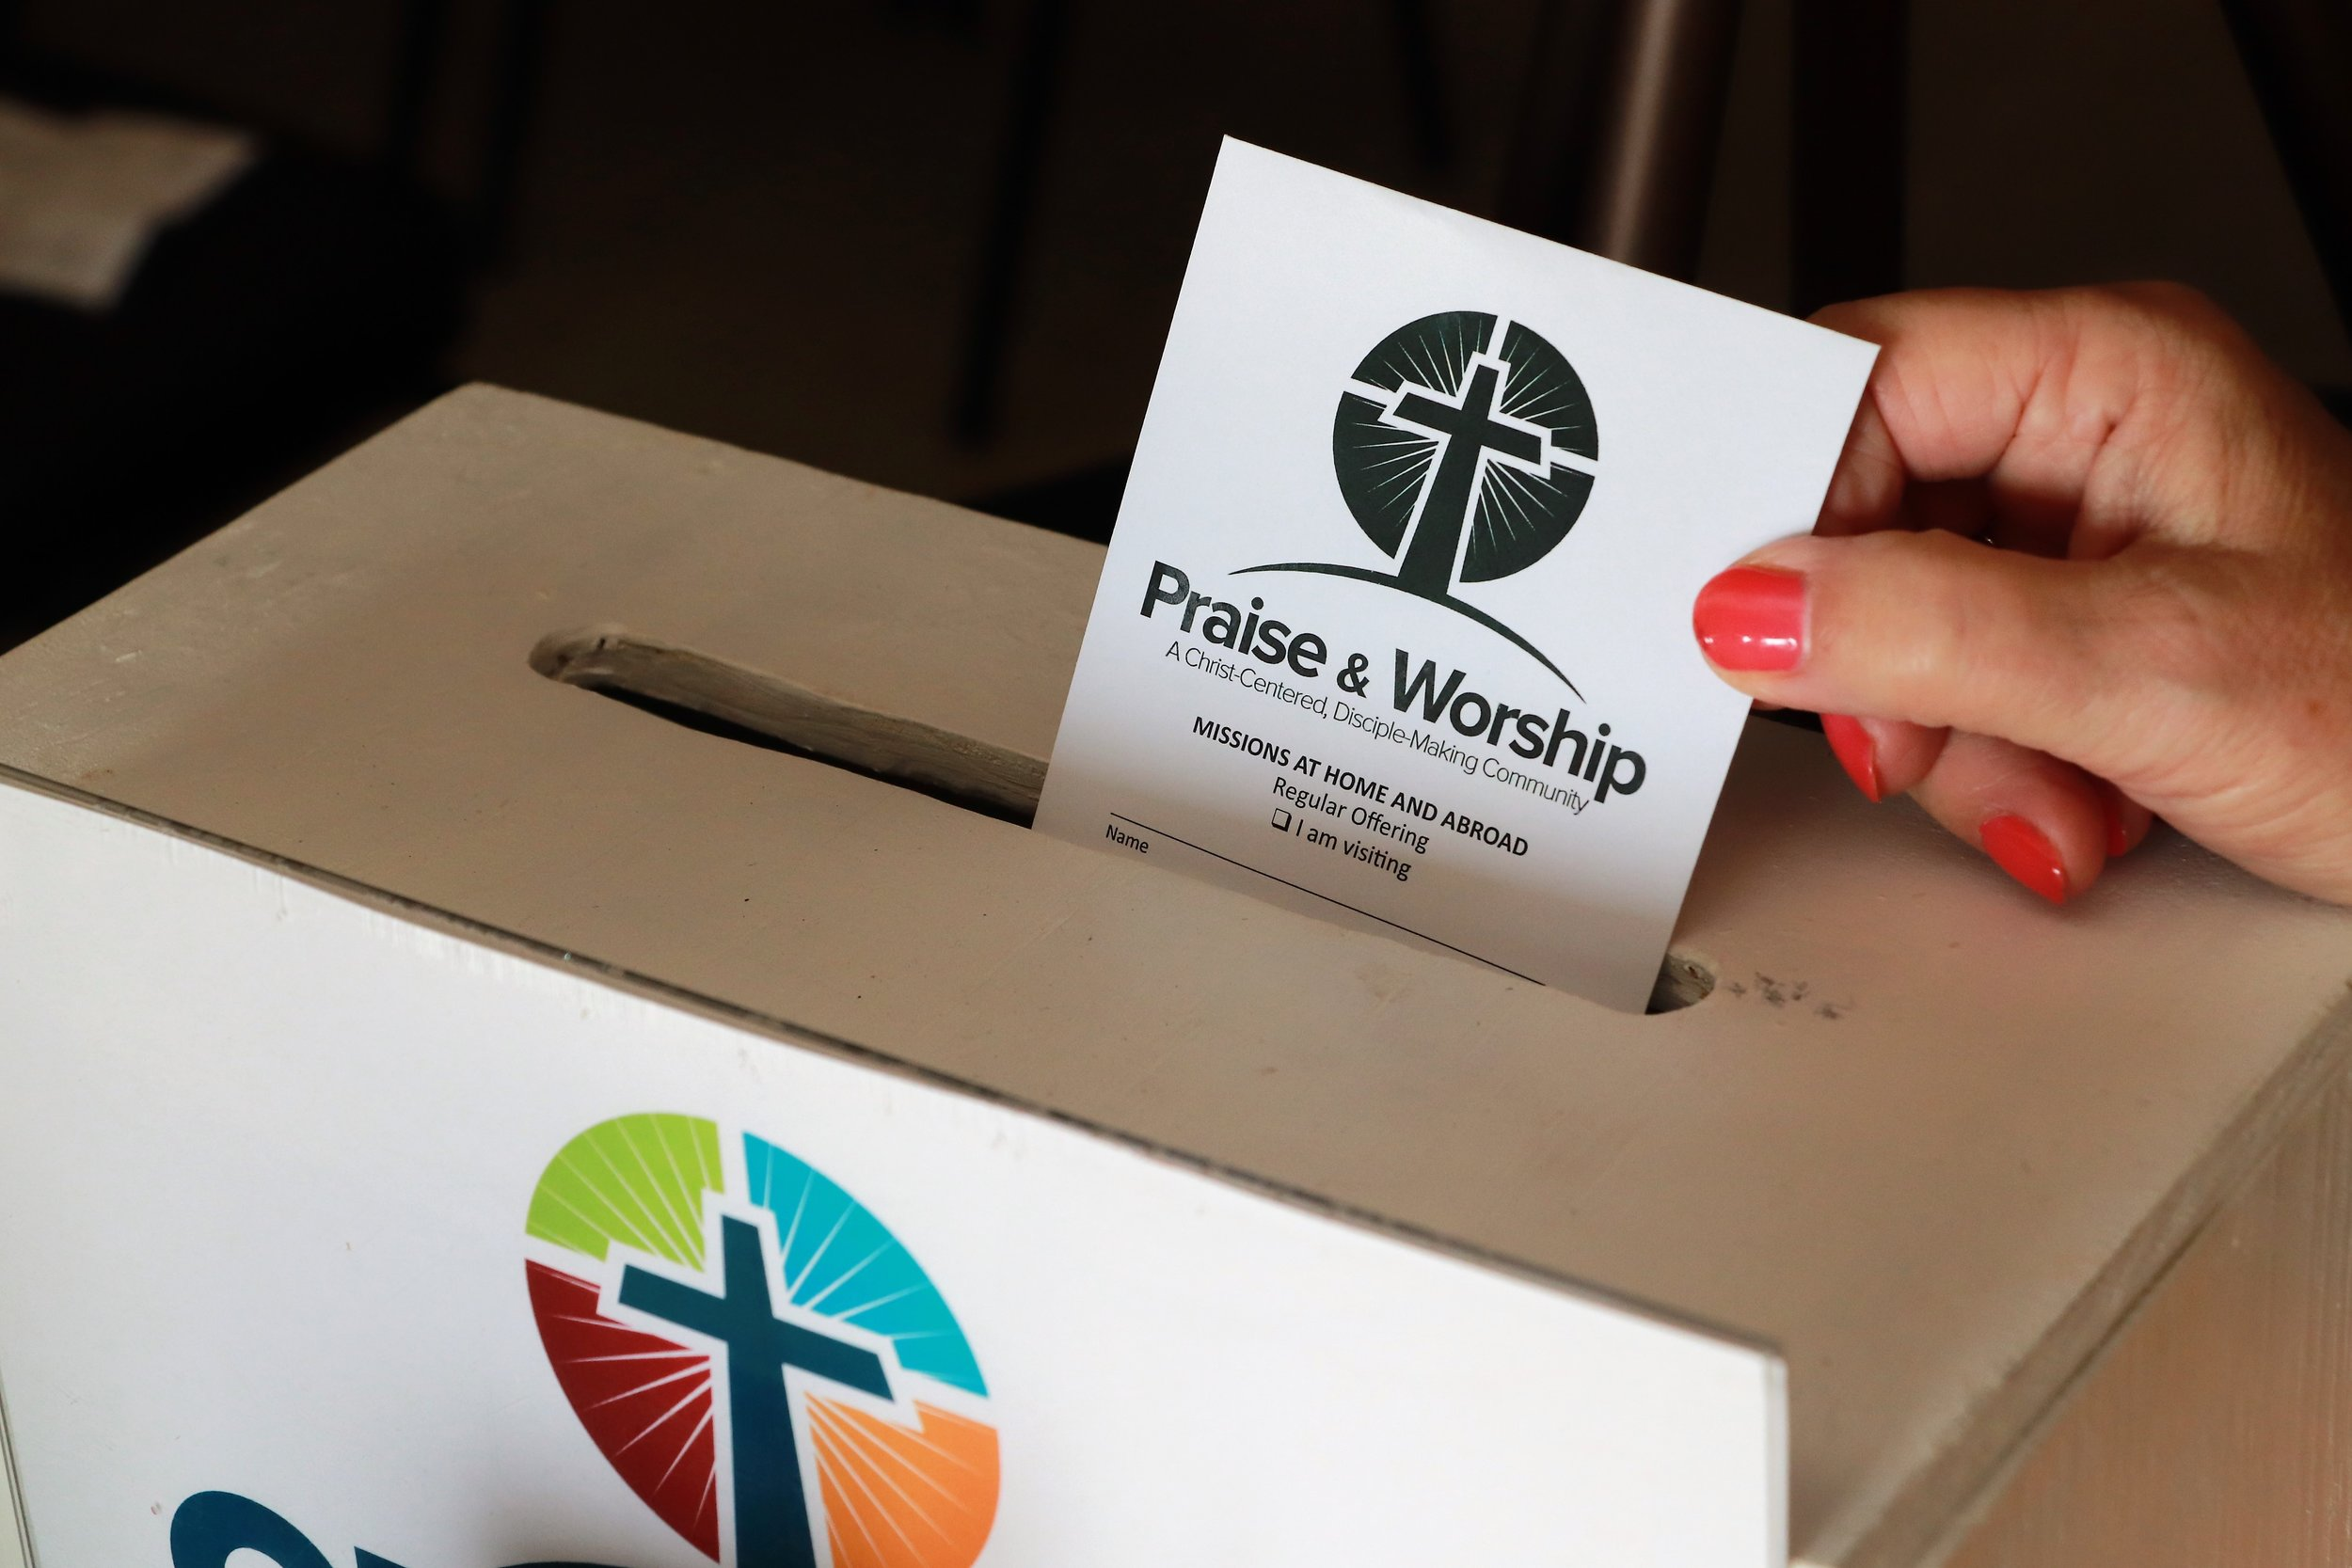 Partner With Us - Want to partner with us? Joyfully help continue the ministry of Praise & Worship!